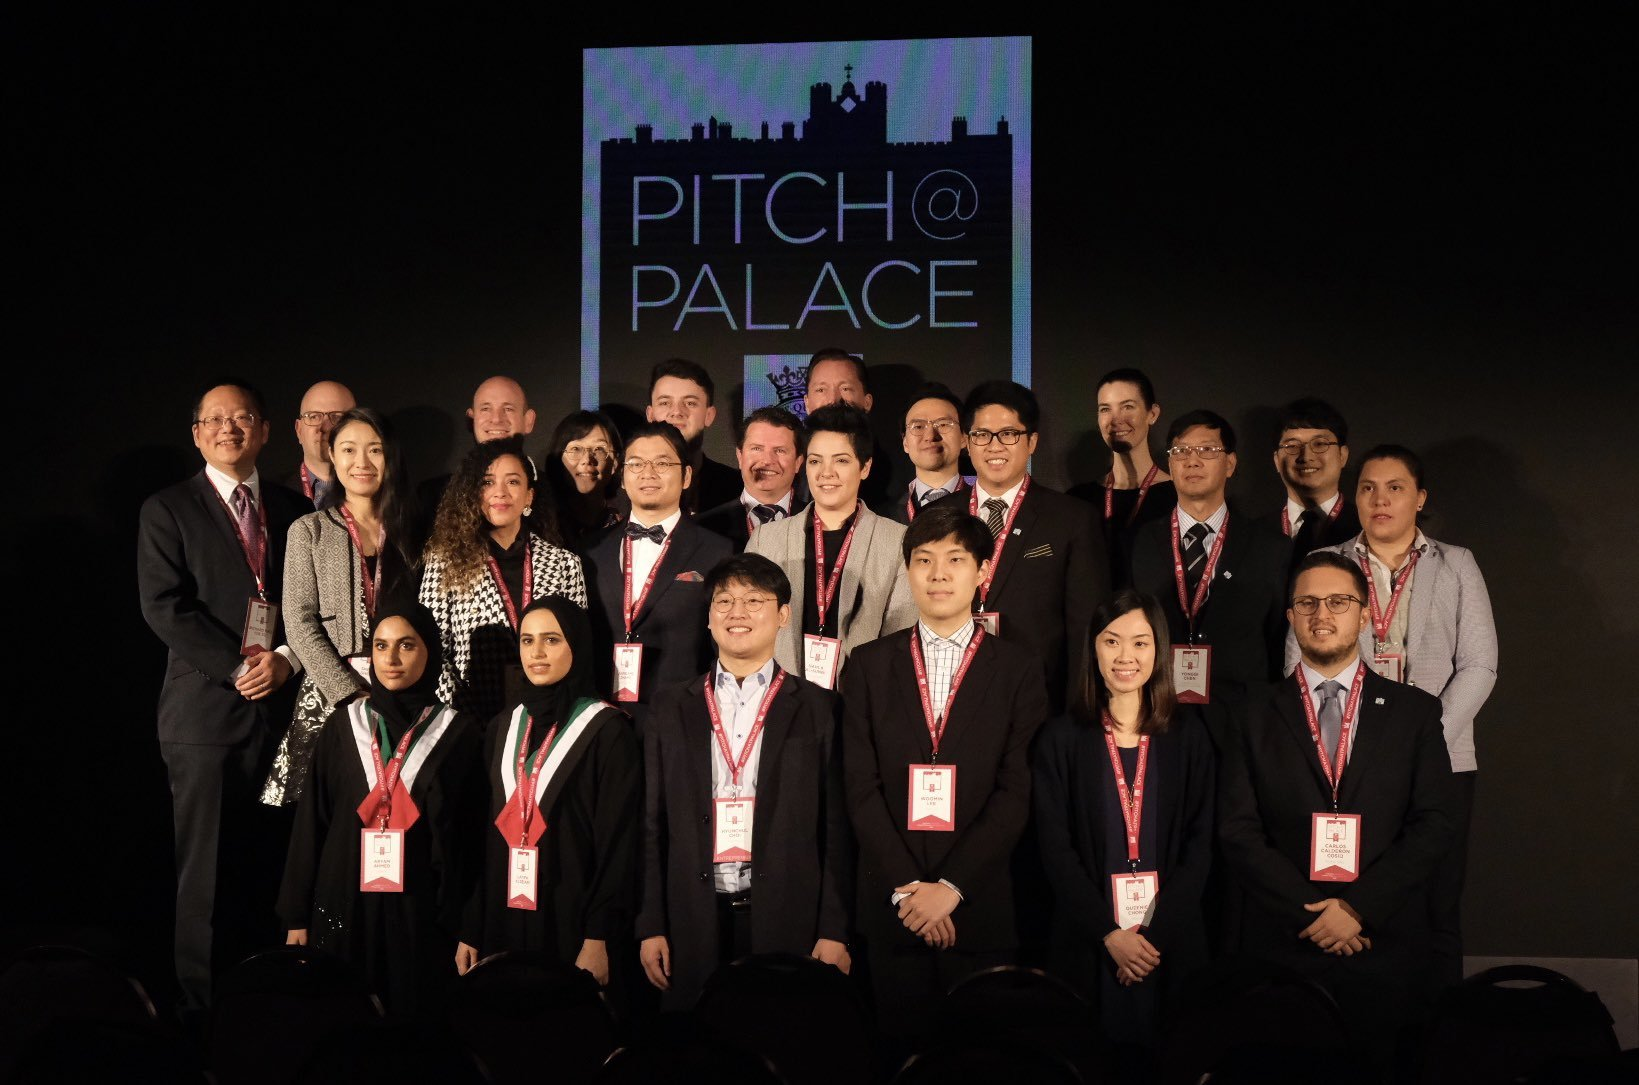 Winner of Pitch@Palace Global 4.0